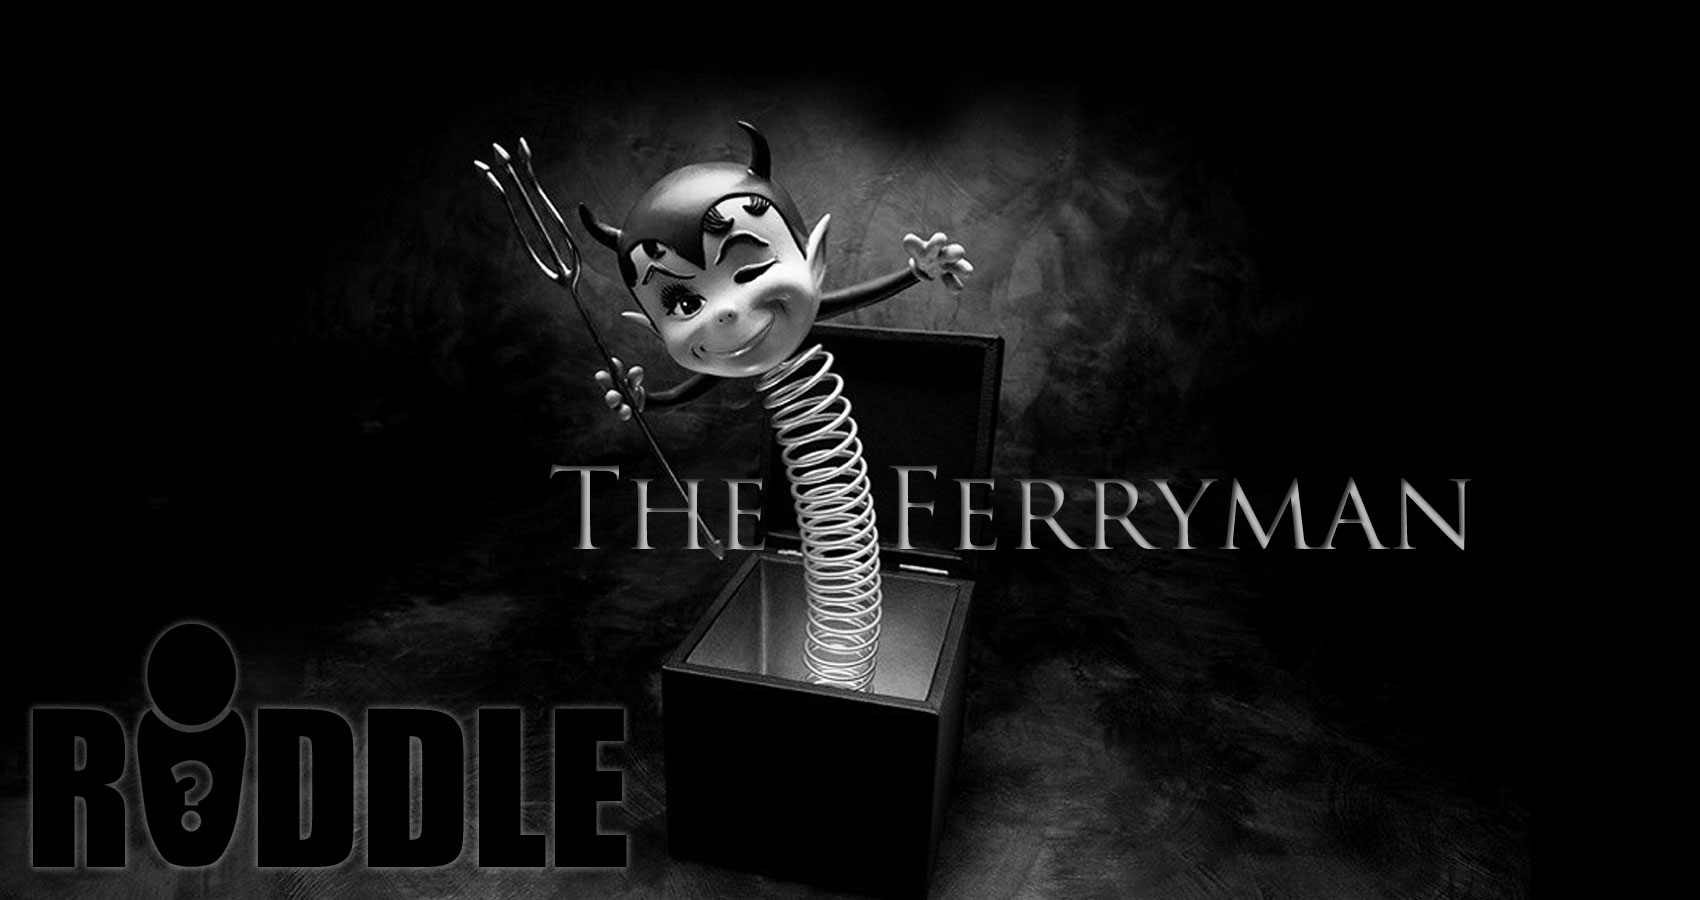 THE FERRYMAN written by Liam Ward at Spillwords.com